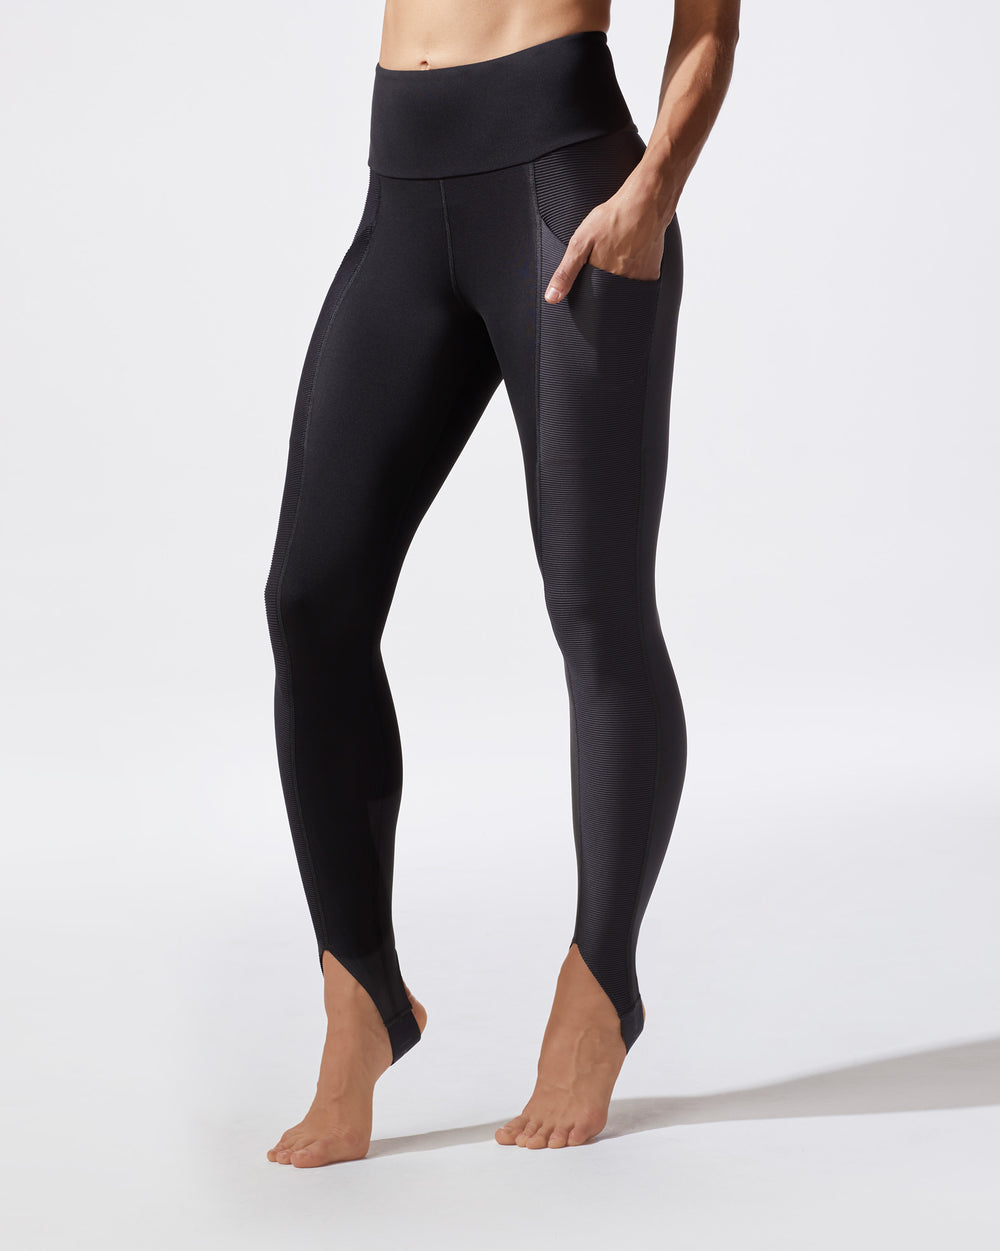 Uproar Legging - Black